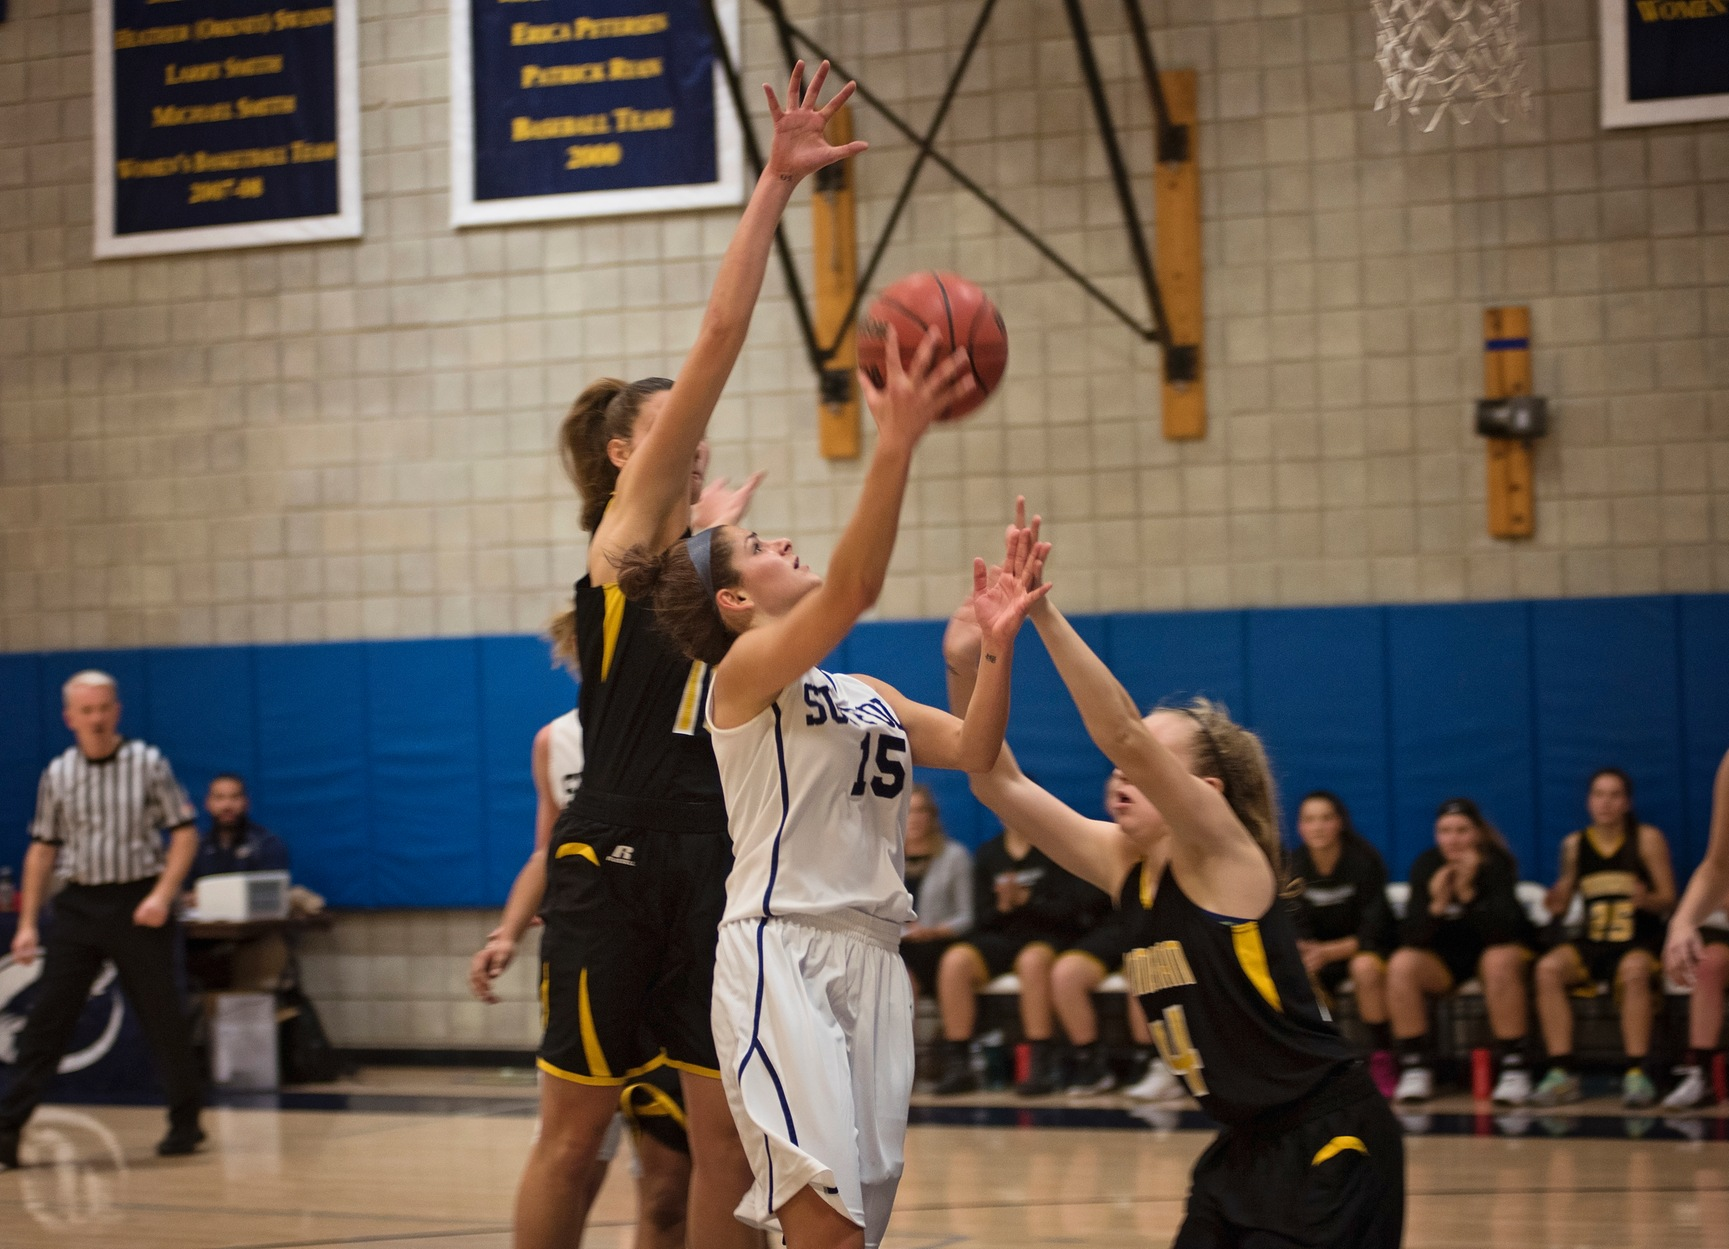 Women's Basketball Takes Down Lasell, 61-50